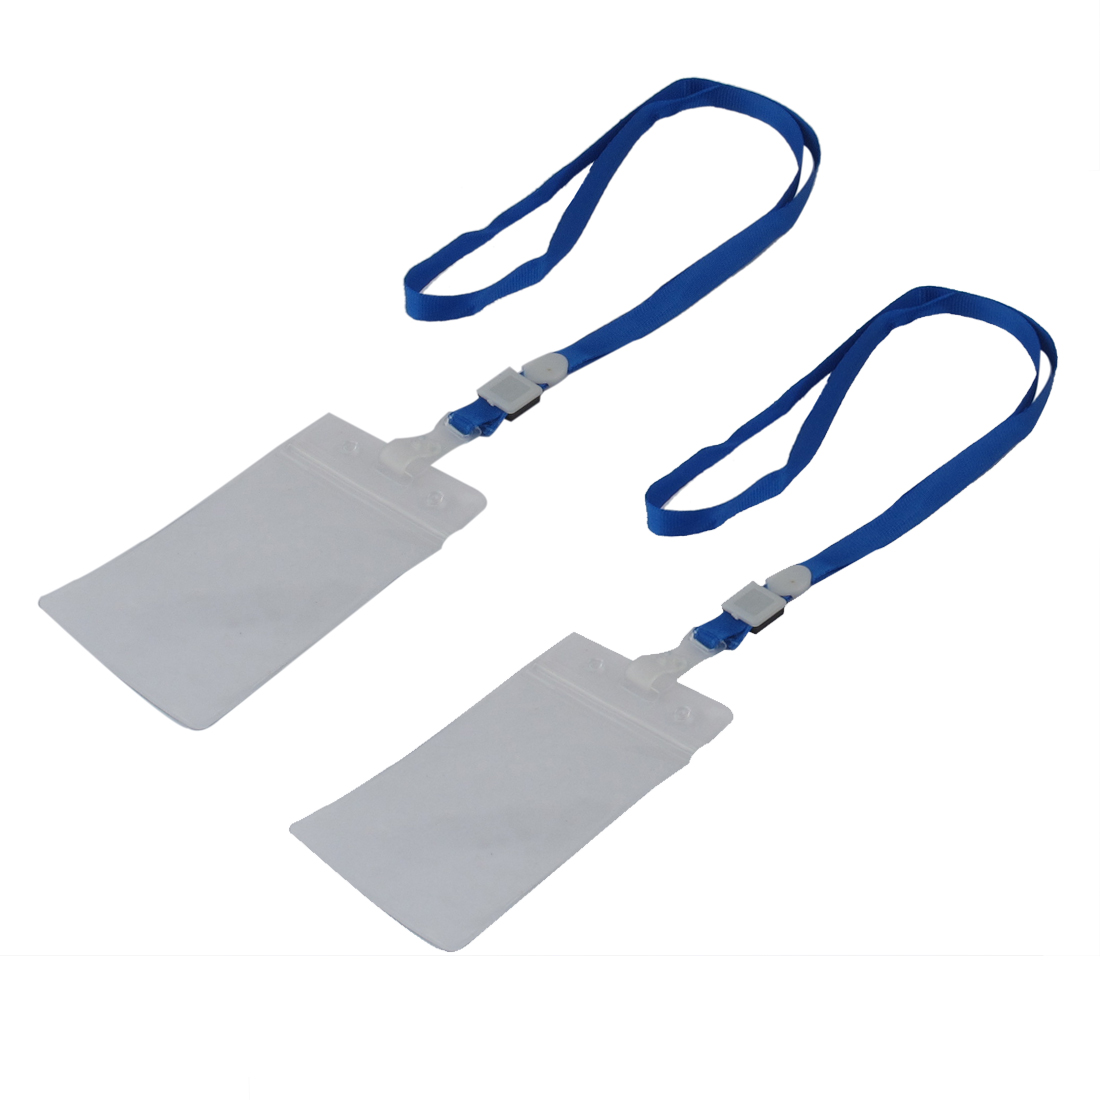 School Office Work Plastic Vertical ID Credit Card Badge Holder Pouch Clear 2pcs